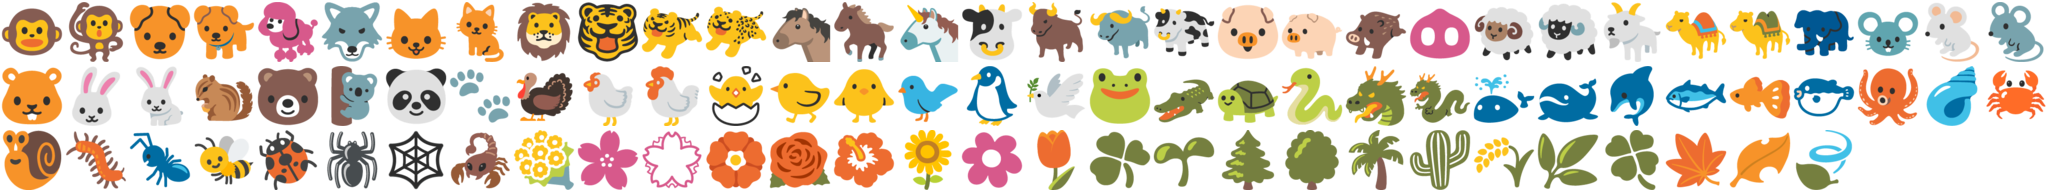 briar-android/src/main/assets/emoji_animals_nature.png